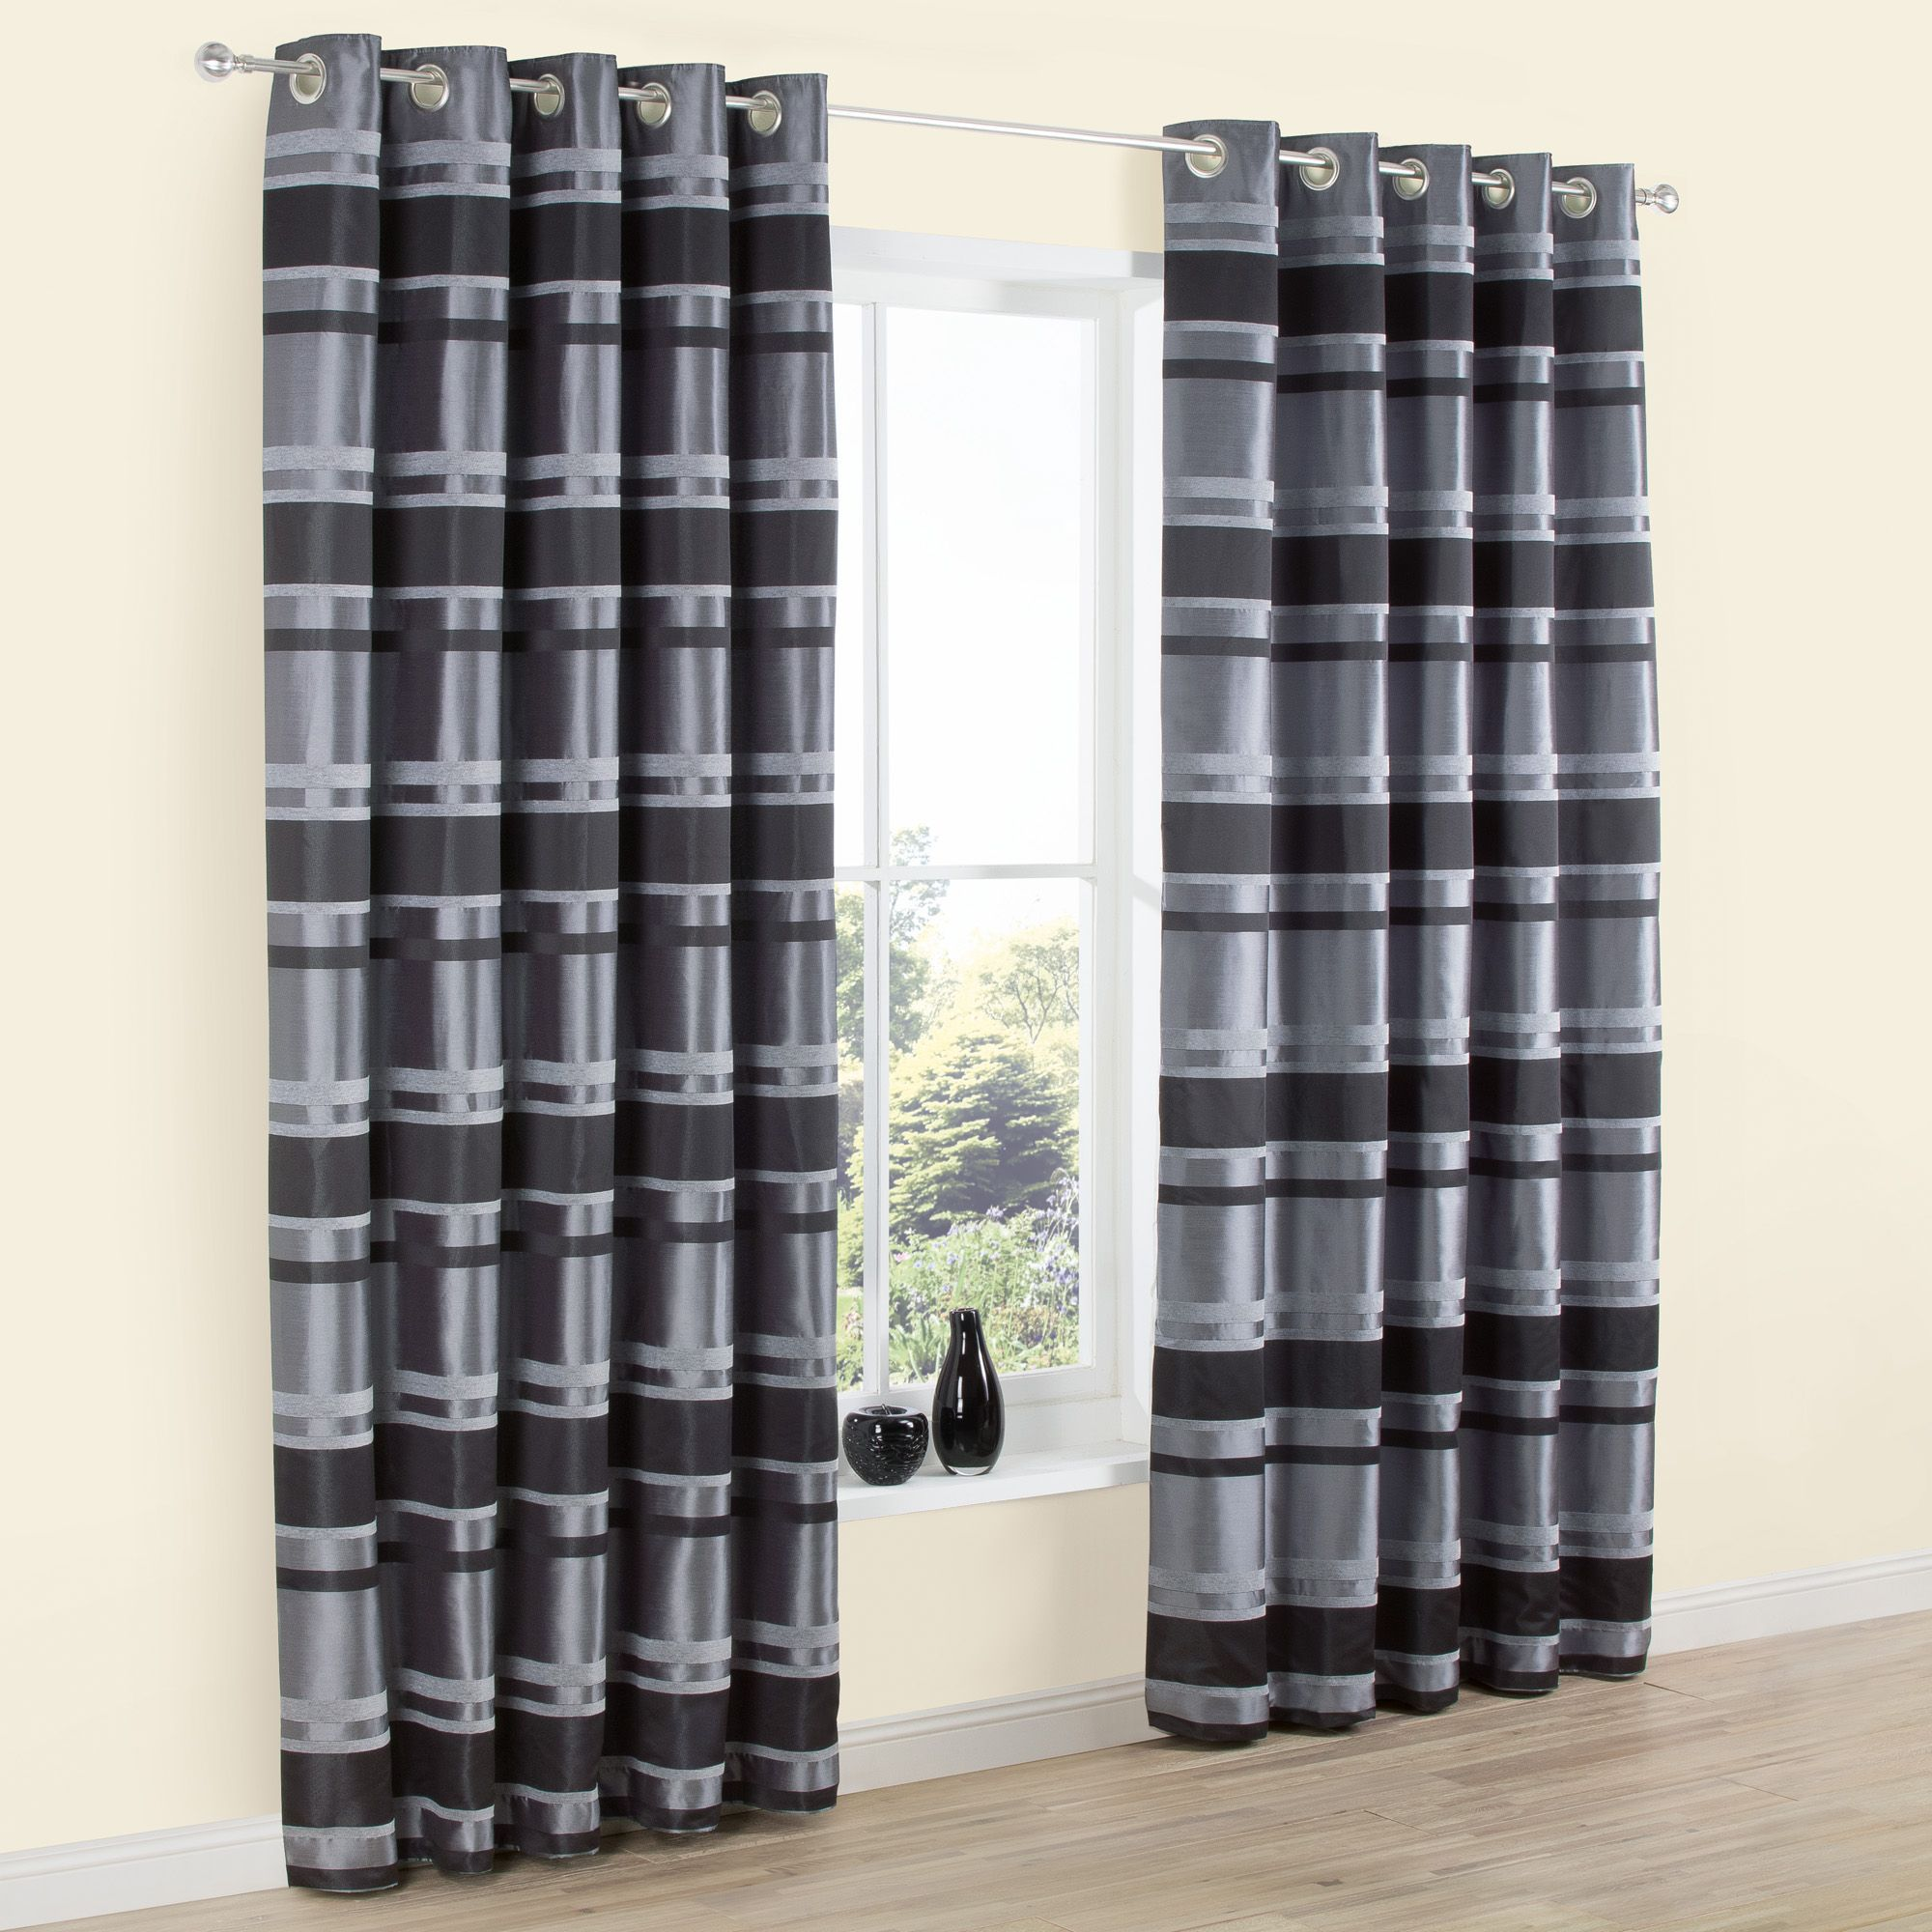 Black and white checked curtains - Dill Black Grey Striped Faux Silk Eyelet Lined Curtains W 228 Cm L 228 Cm Departments Diy At B Q